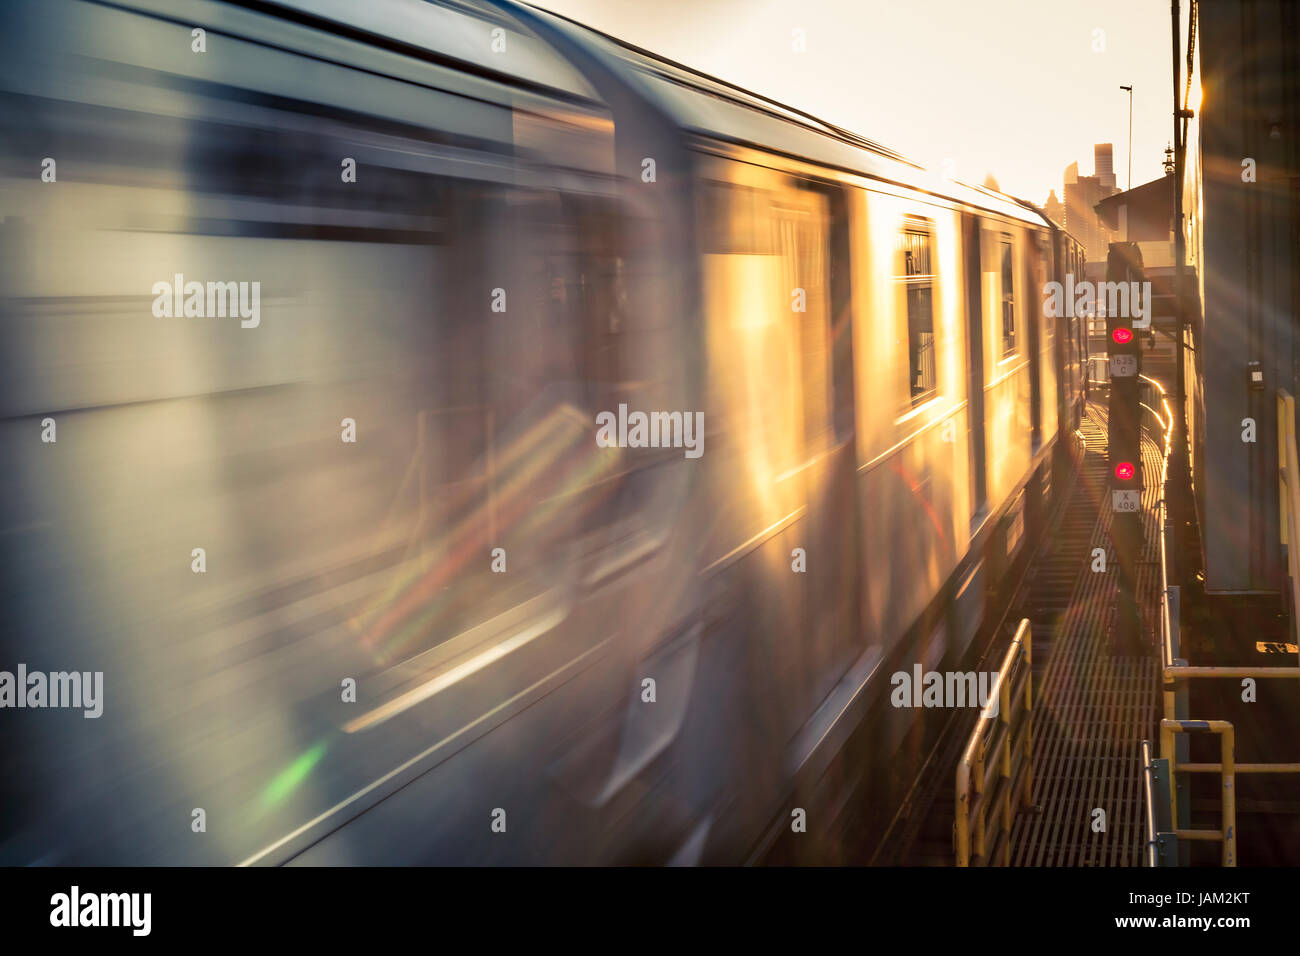 Train in speed at sunset, abstract photo Stock Photo